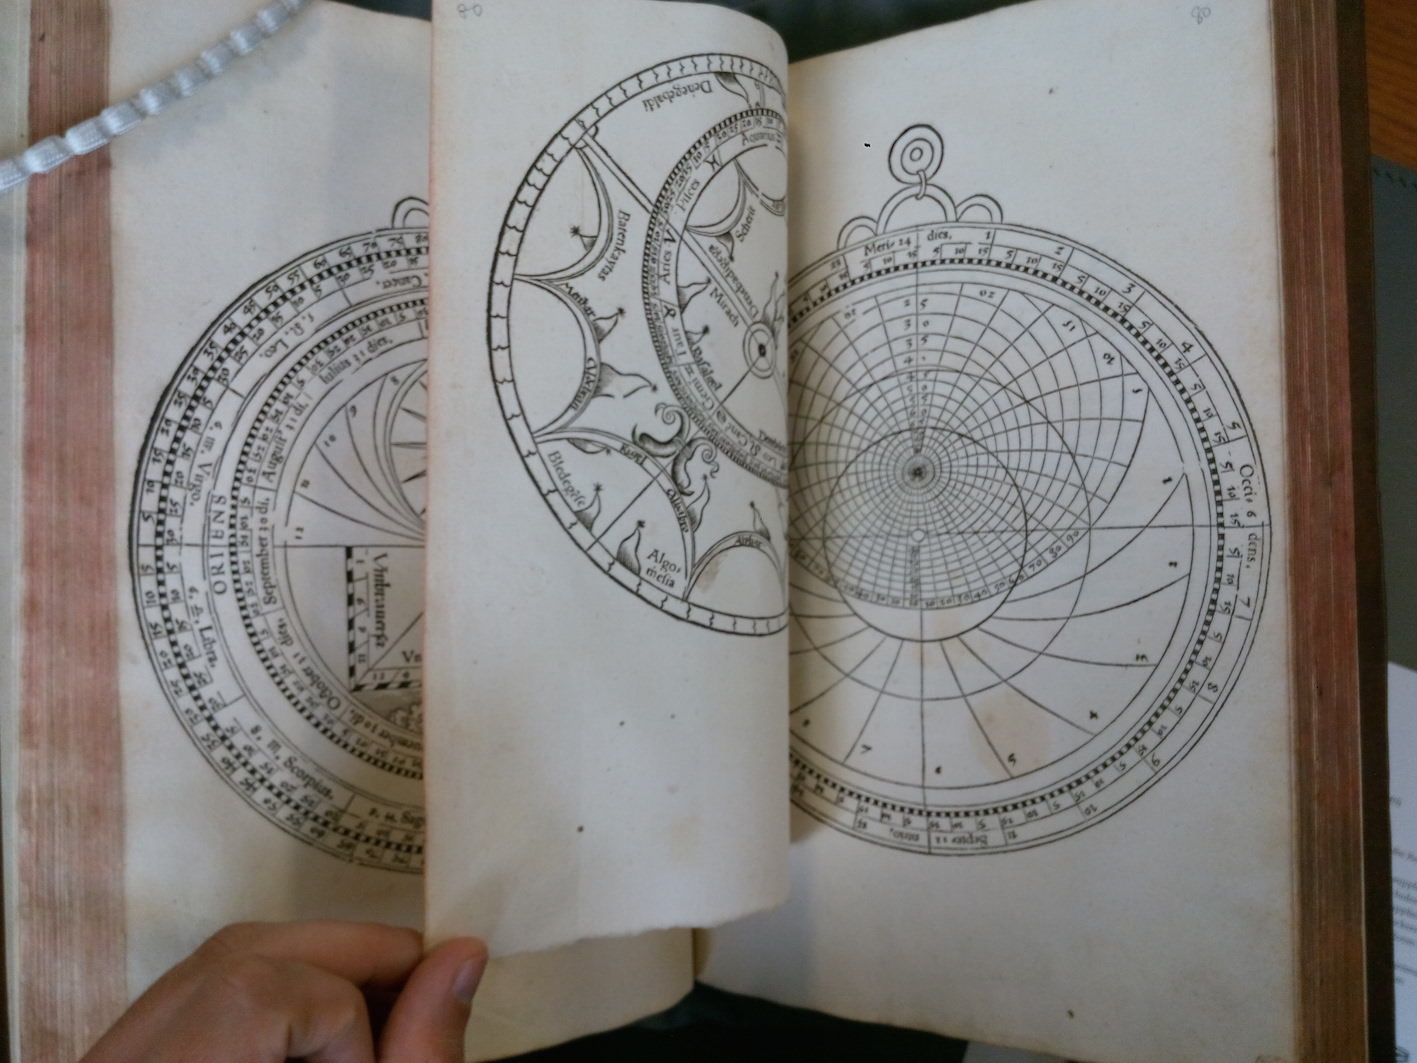 """J. Stöffler, Caelestium Rerum Disciplinae, 1535, Paper astrolabe at the end of the volume (St Andrews University Library, Rare Books Collection, Roy.PA4400.S7)."""